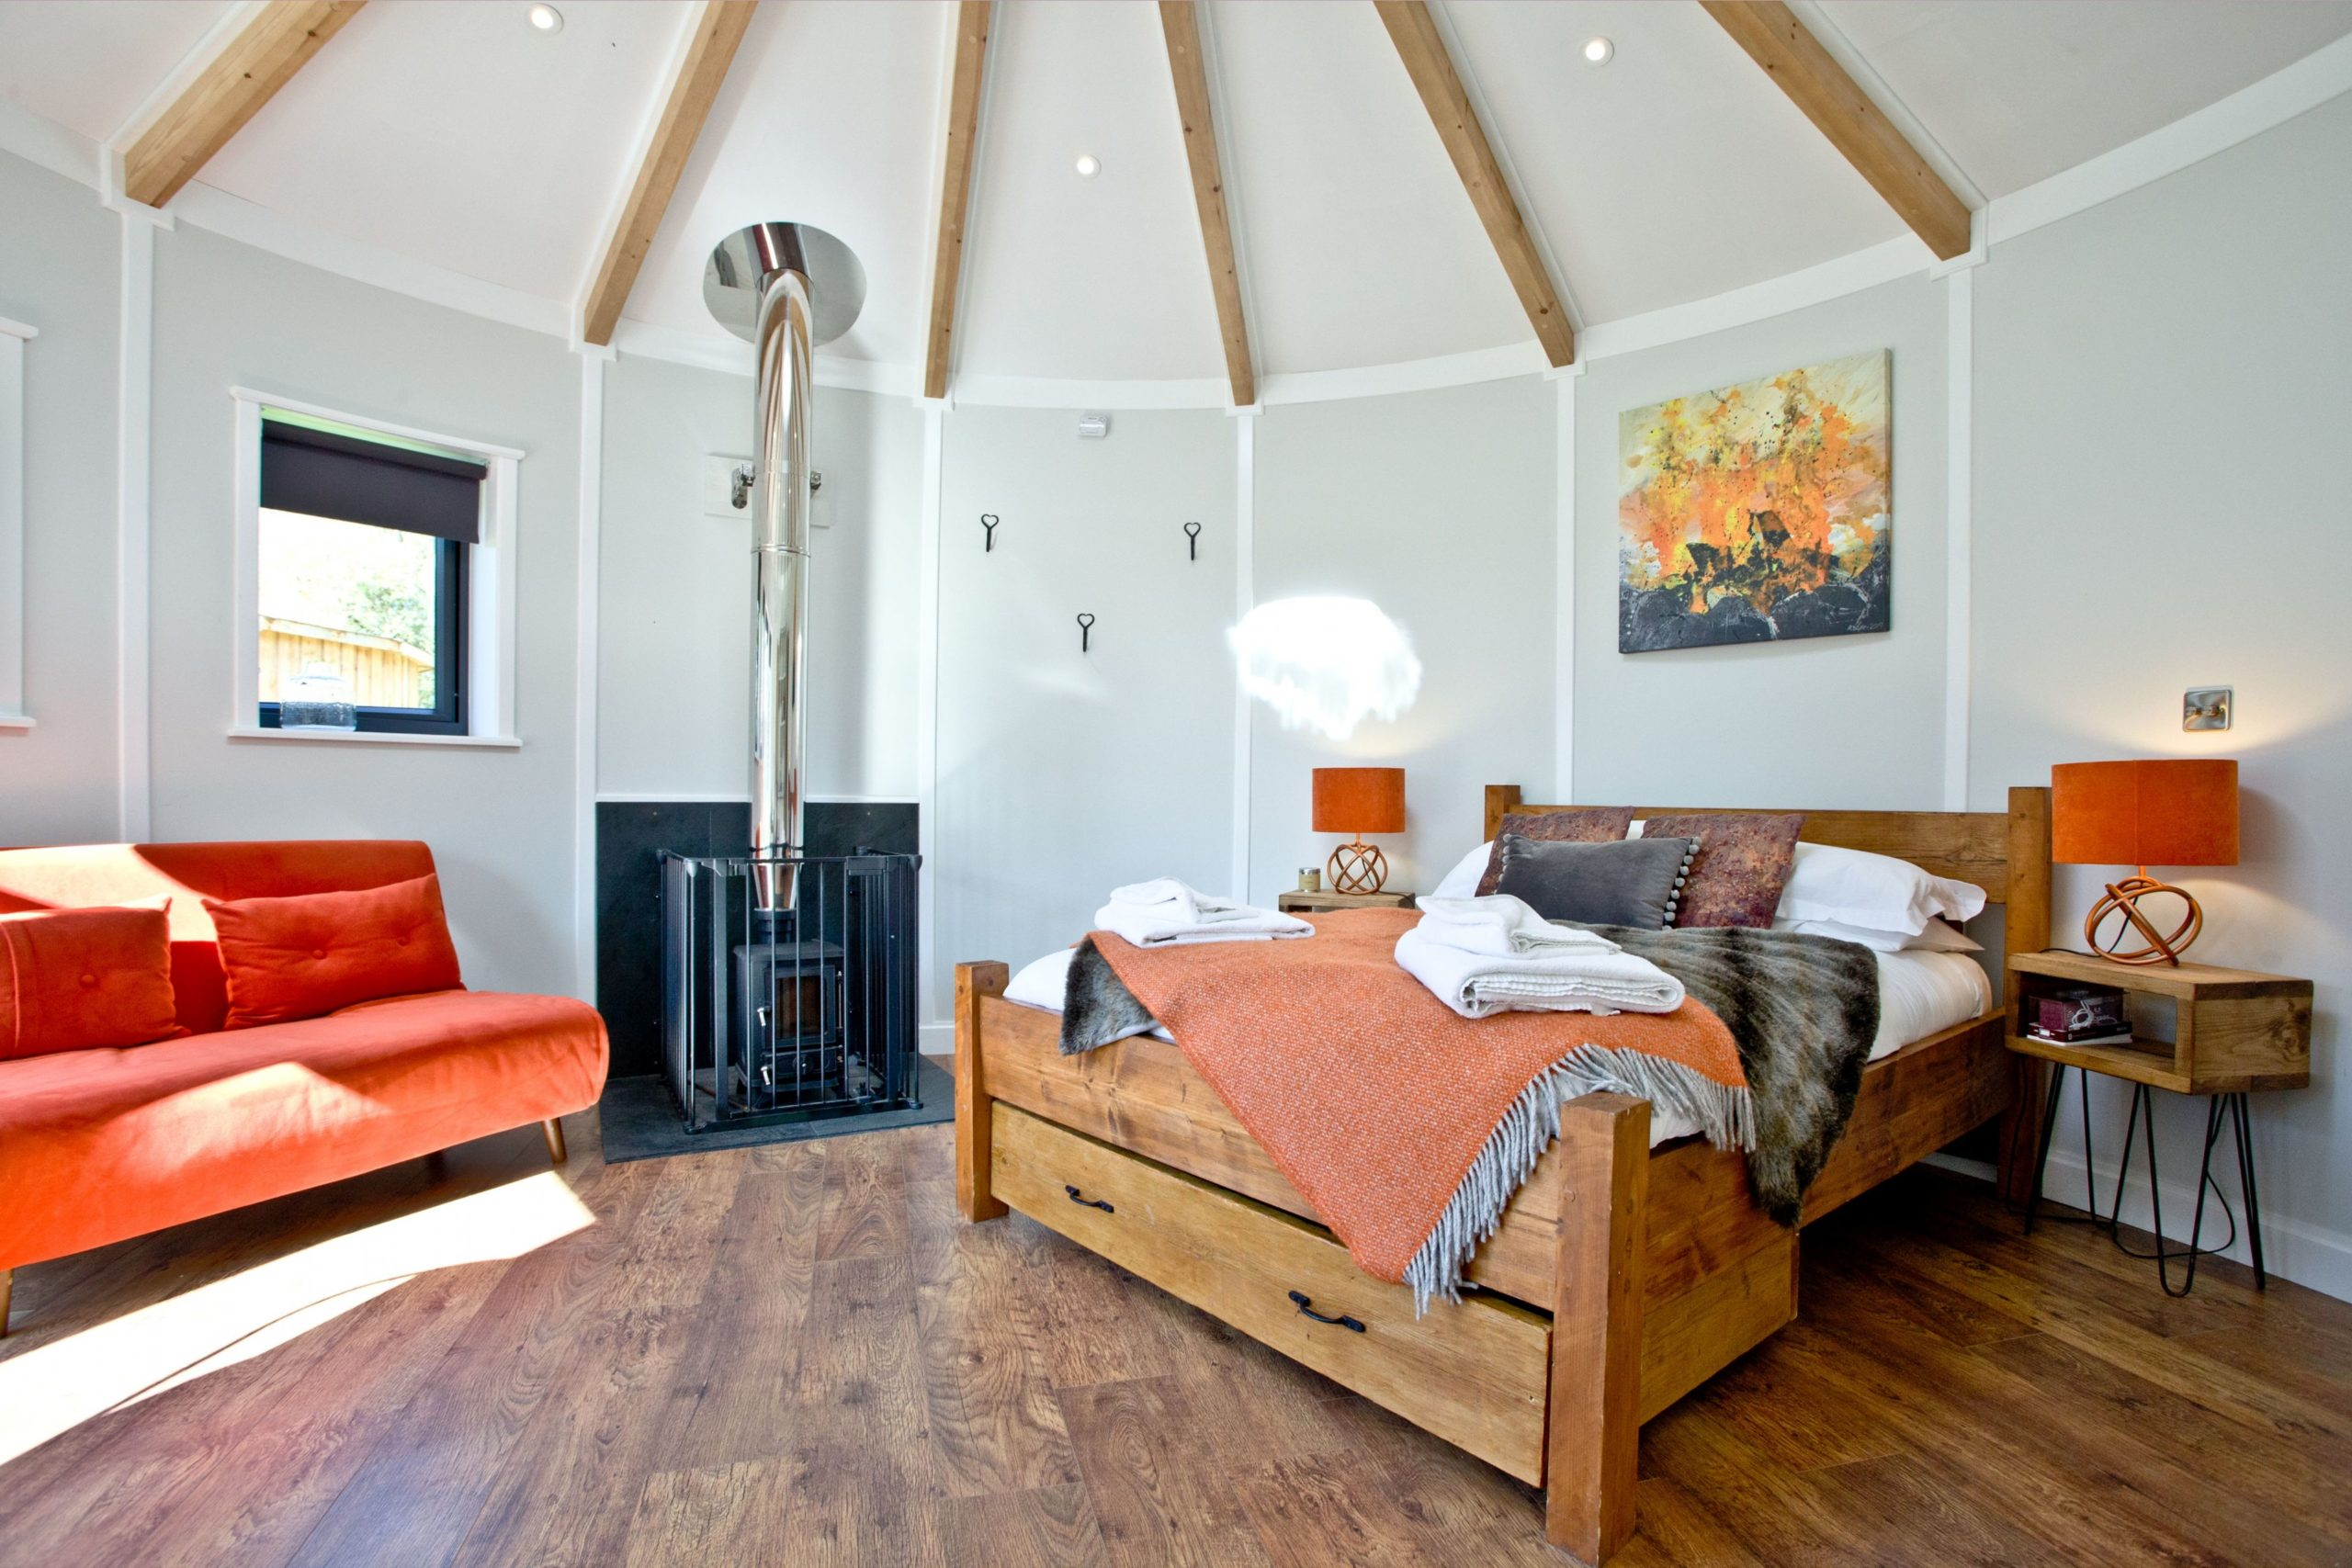 Ember Room Roundhouse in Bude